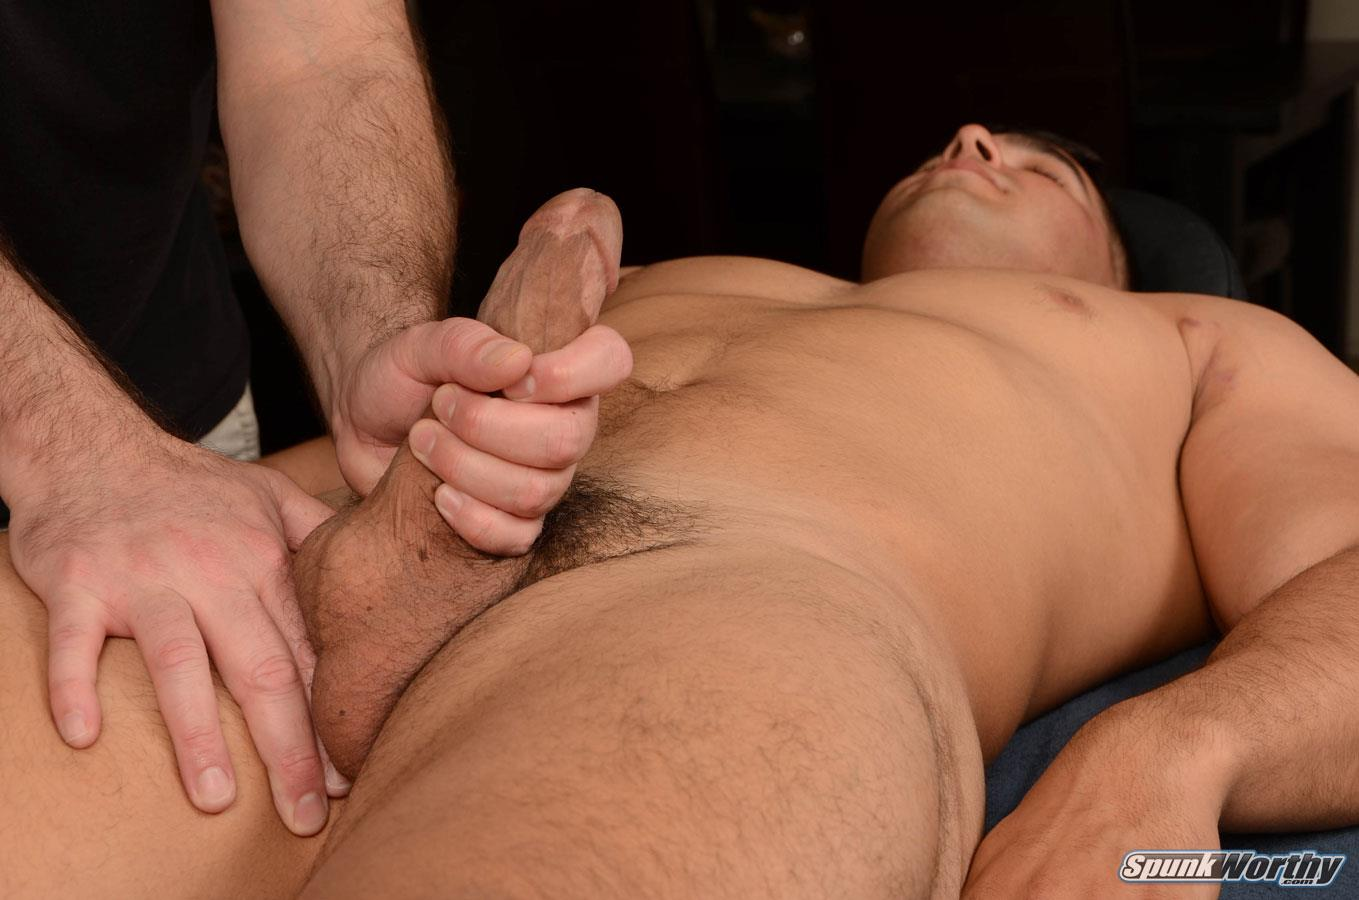 SpunkWorthy-Colt-Beefy-Naked-Marine-Gets-Handjob-From-A-Guy-Amateur-Gay-Porn-16 Straight Beefy US Marine Gets His First Handjob From A Guy